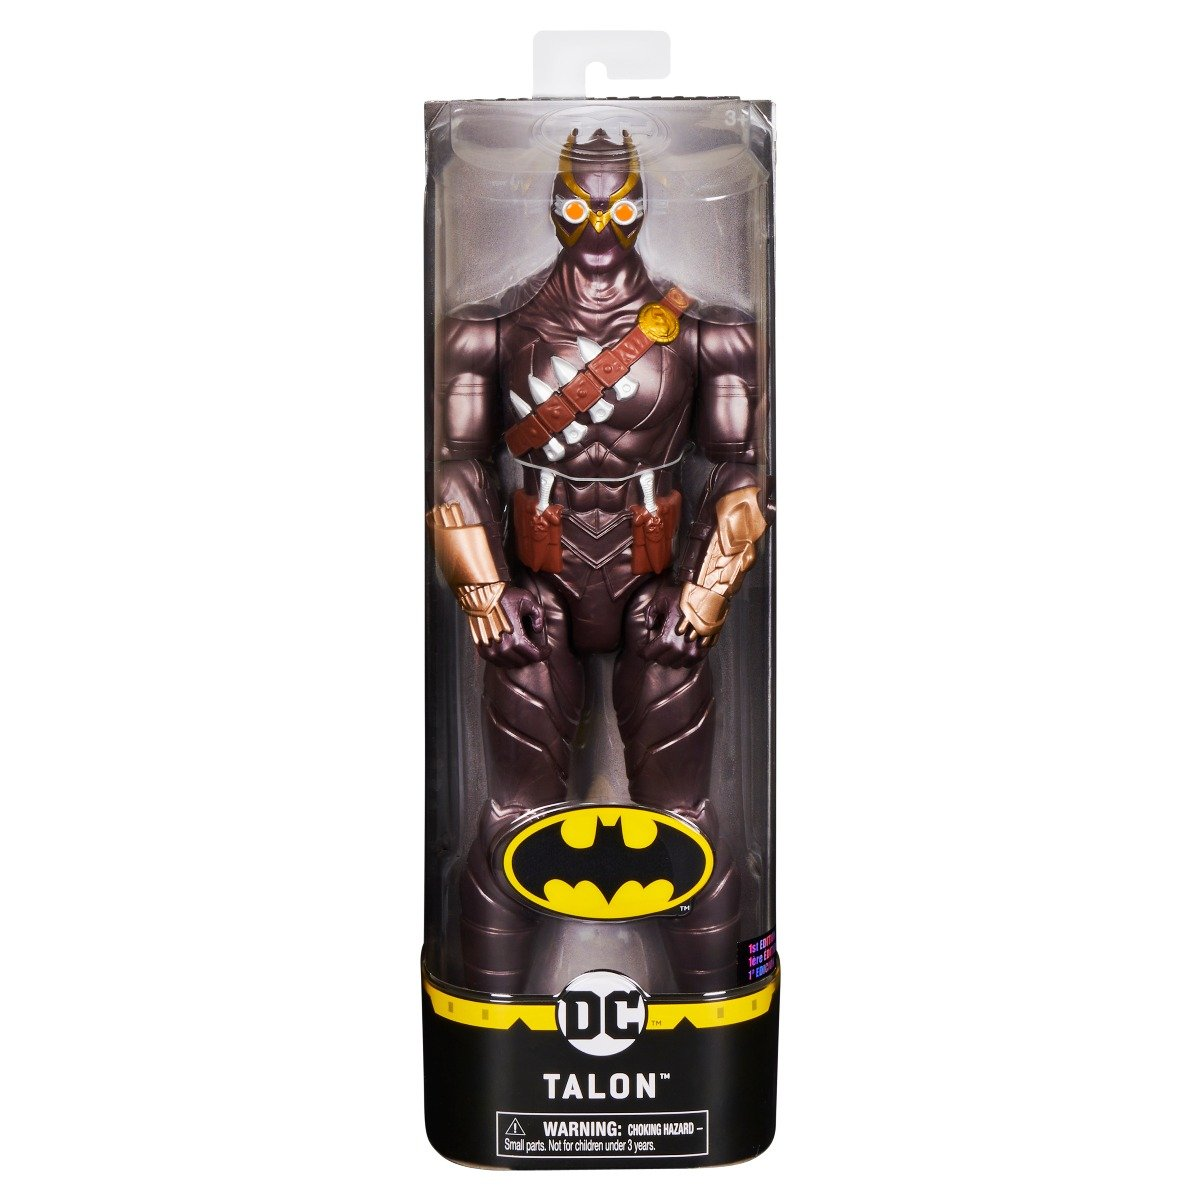 Figurina articulata Batman, Talon 20125291